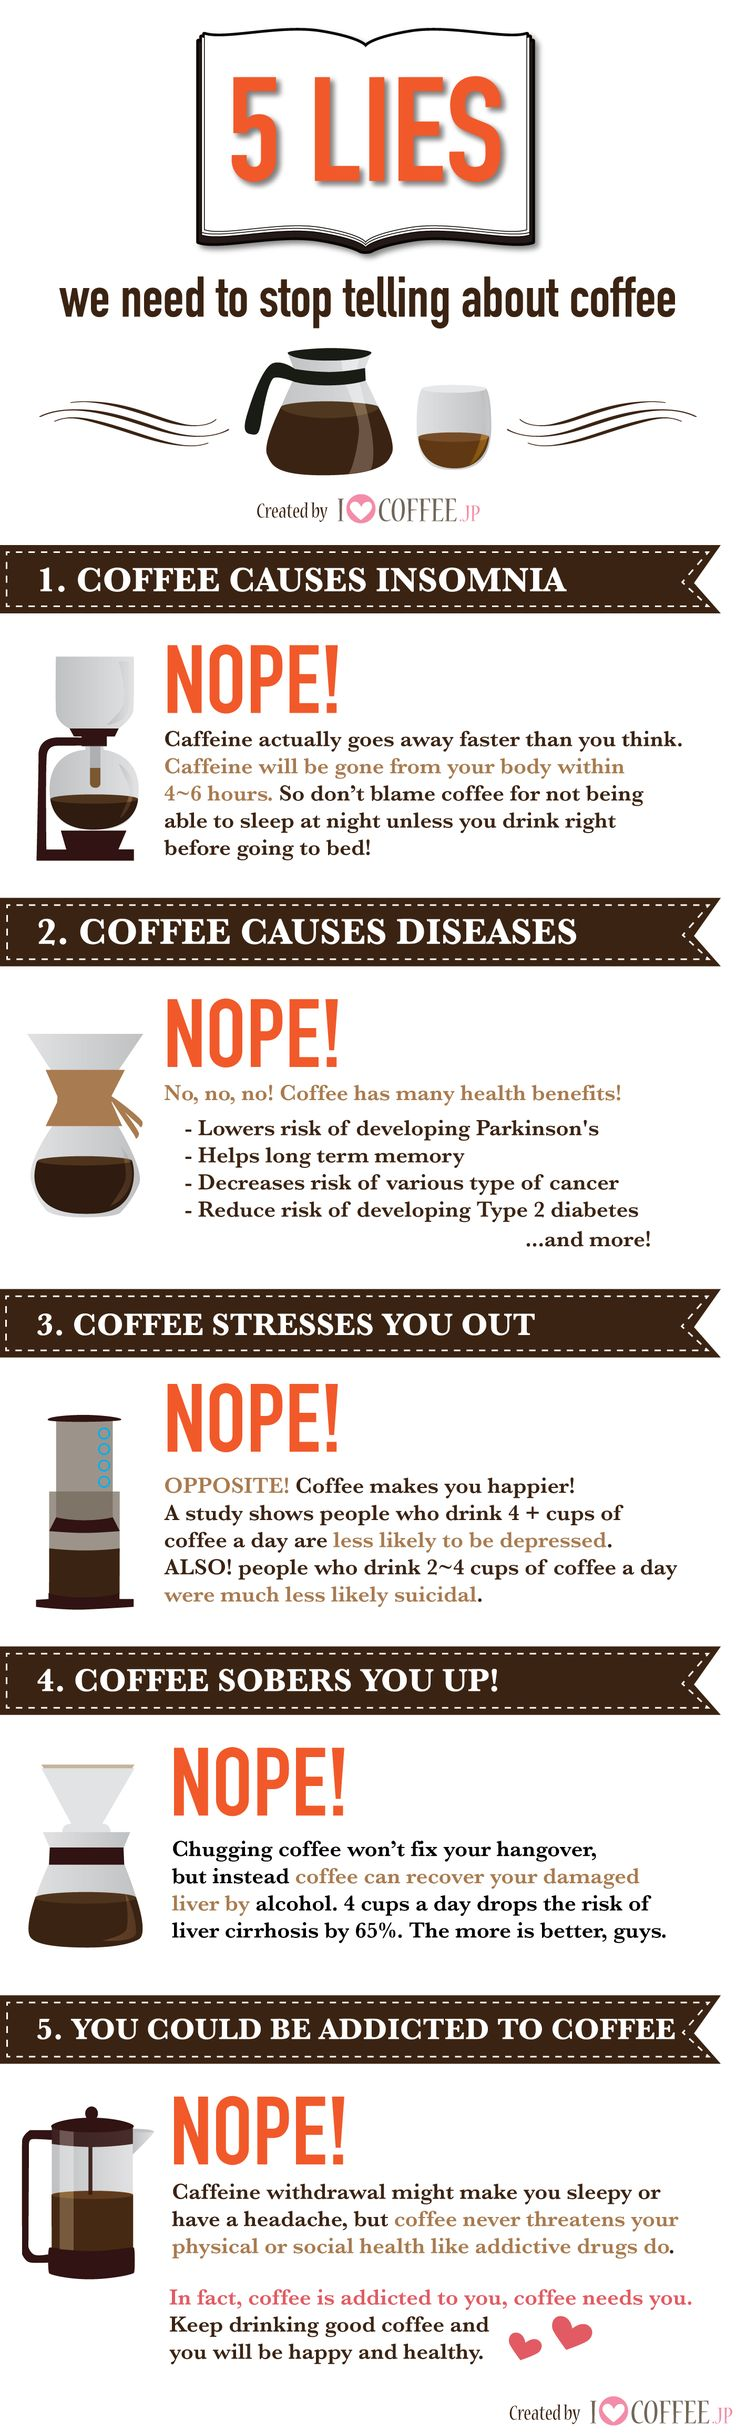 5 lies we need to stop telling about coffee